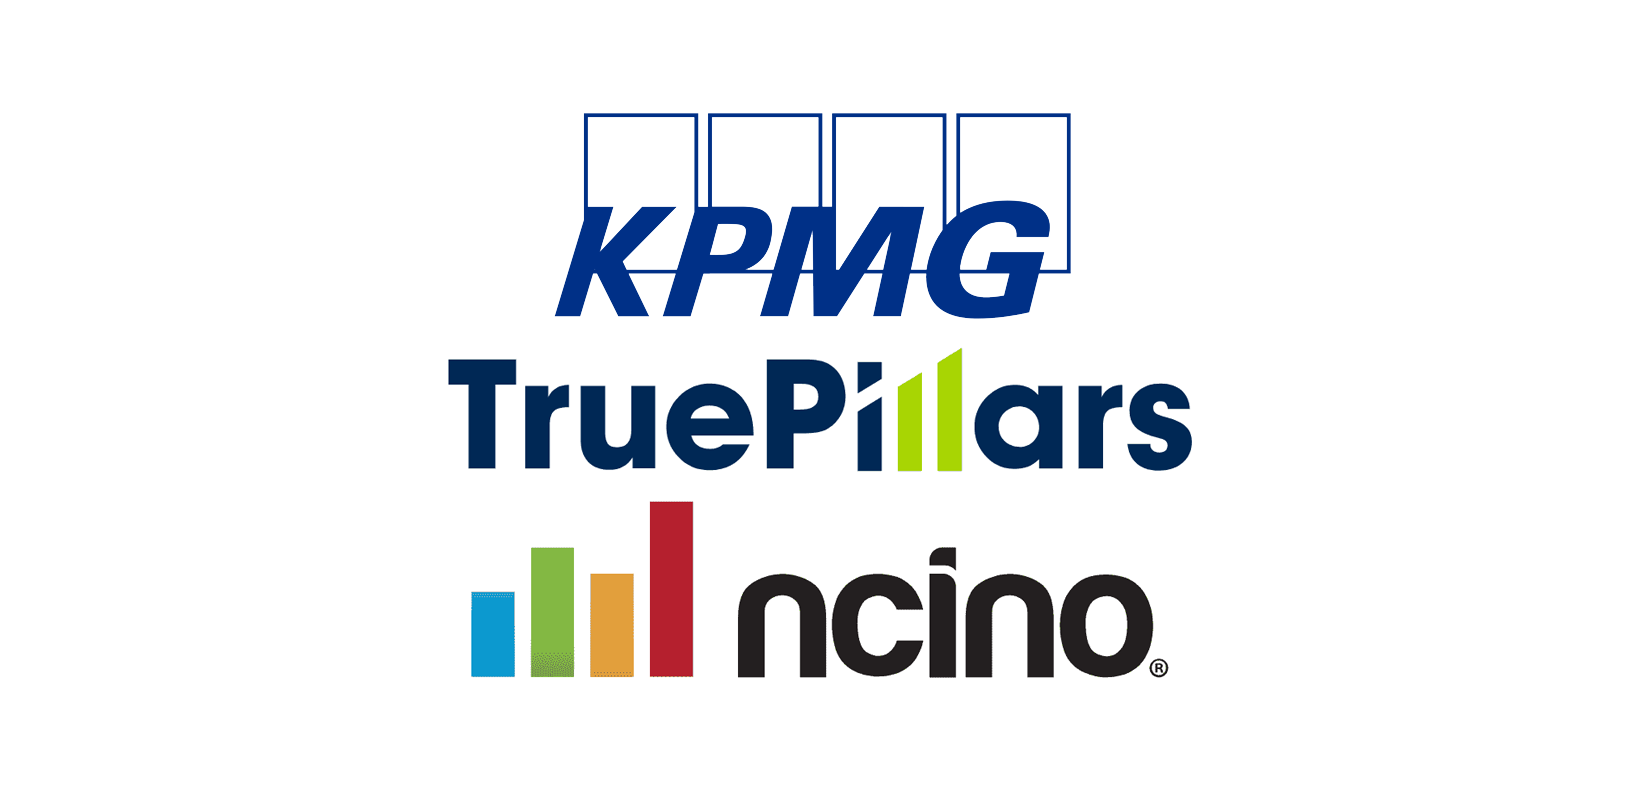 TruePillars Live on nCino in 12 Weeks Following Joint Deployment with KPMG